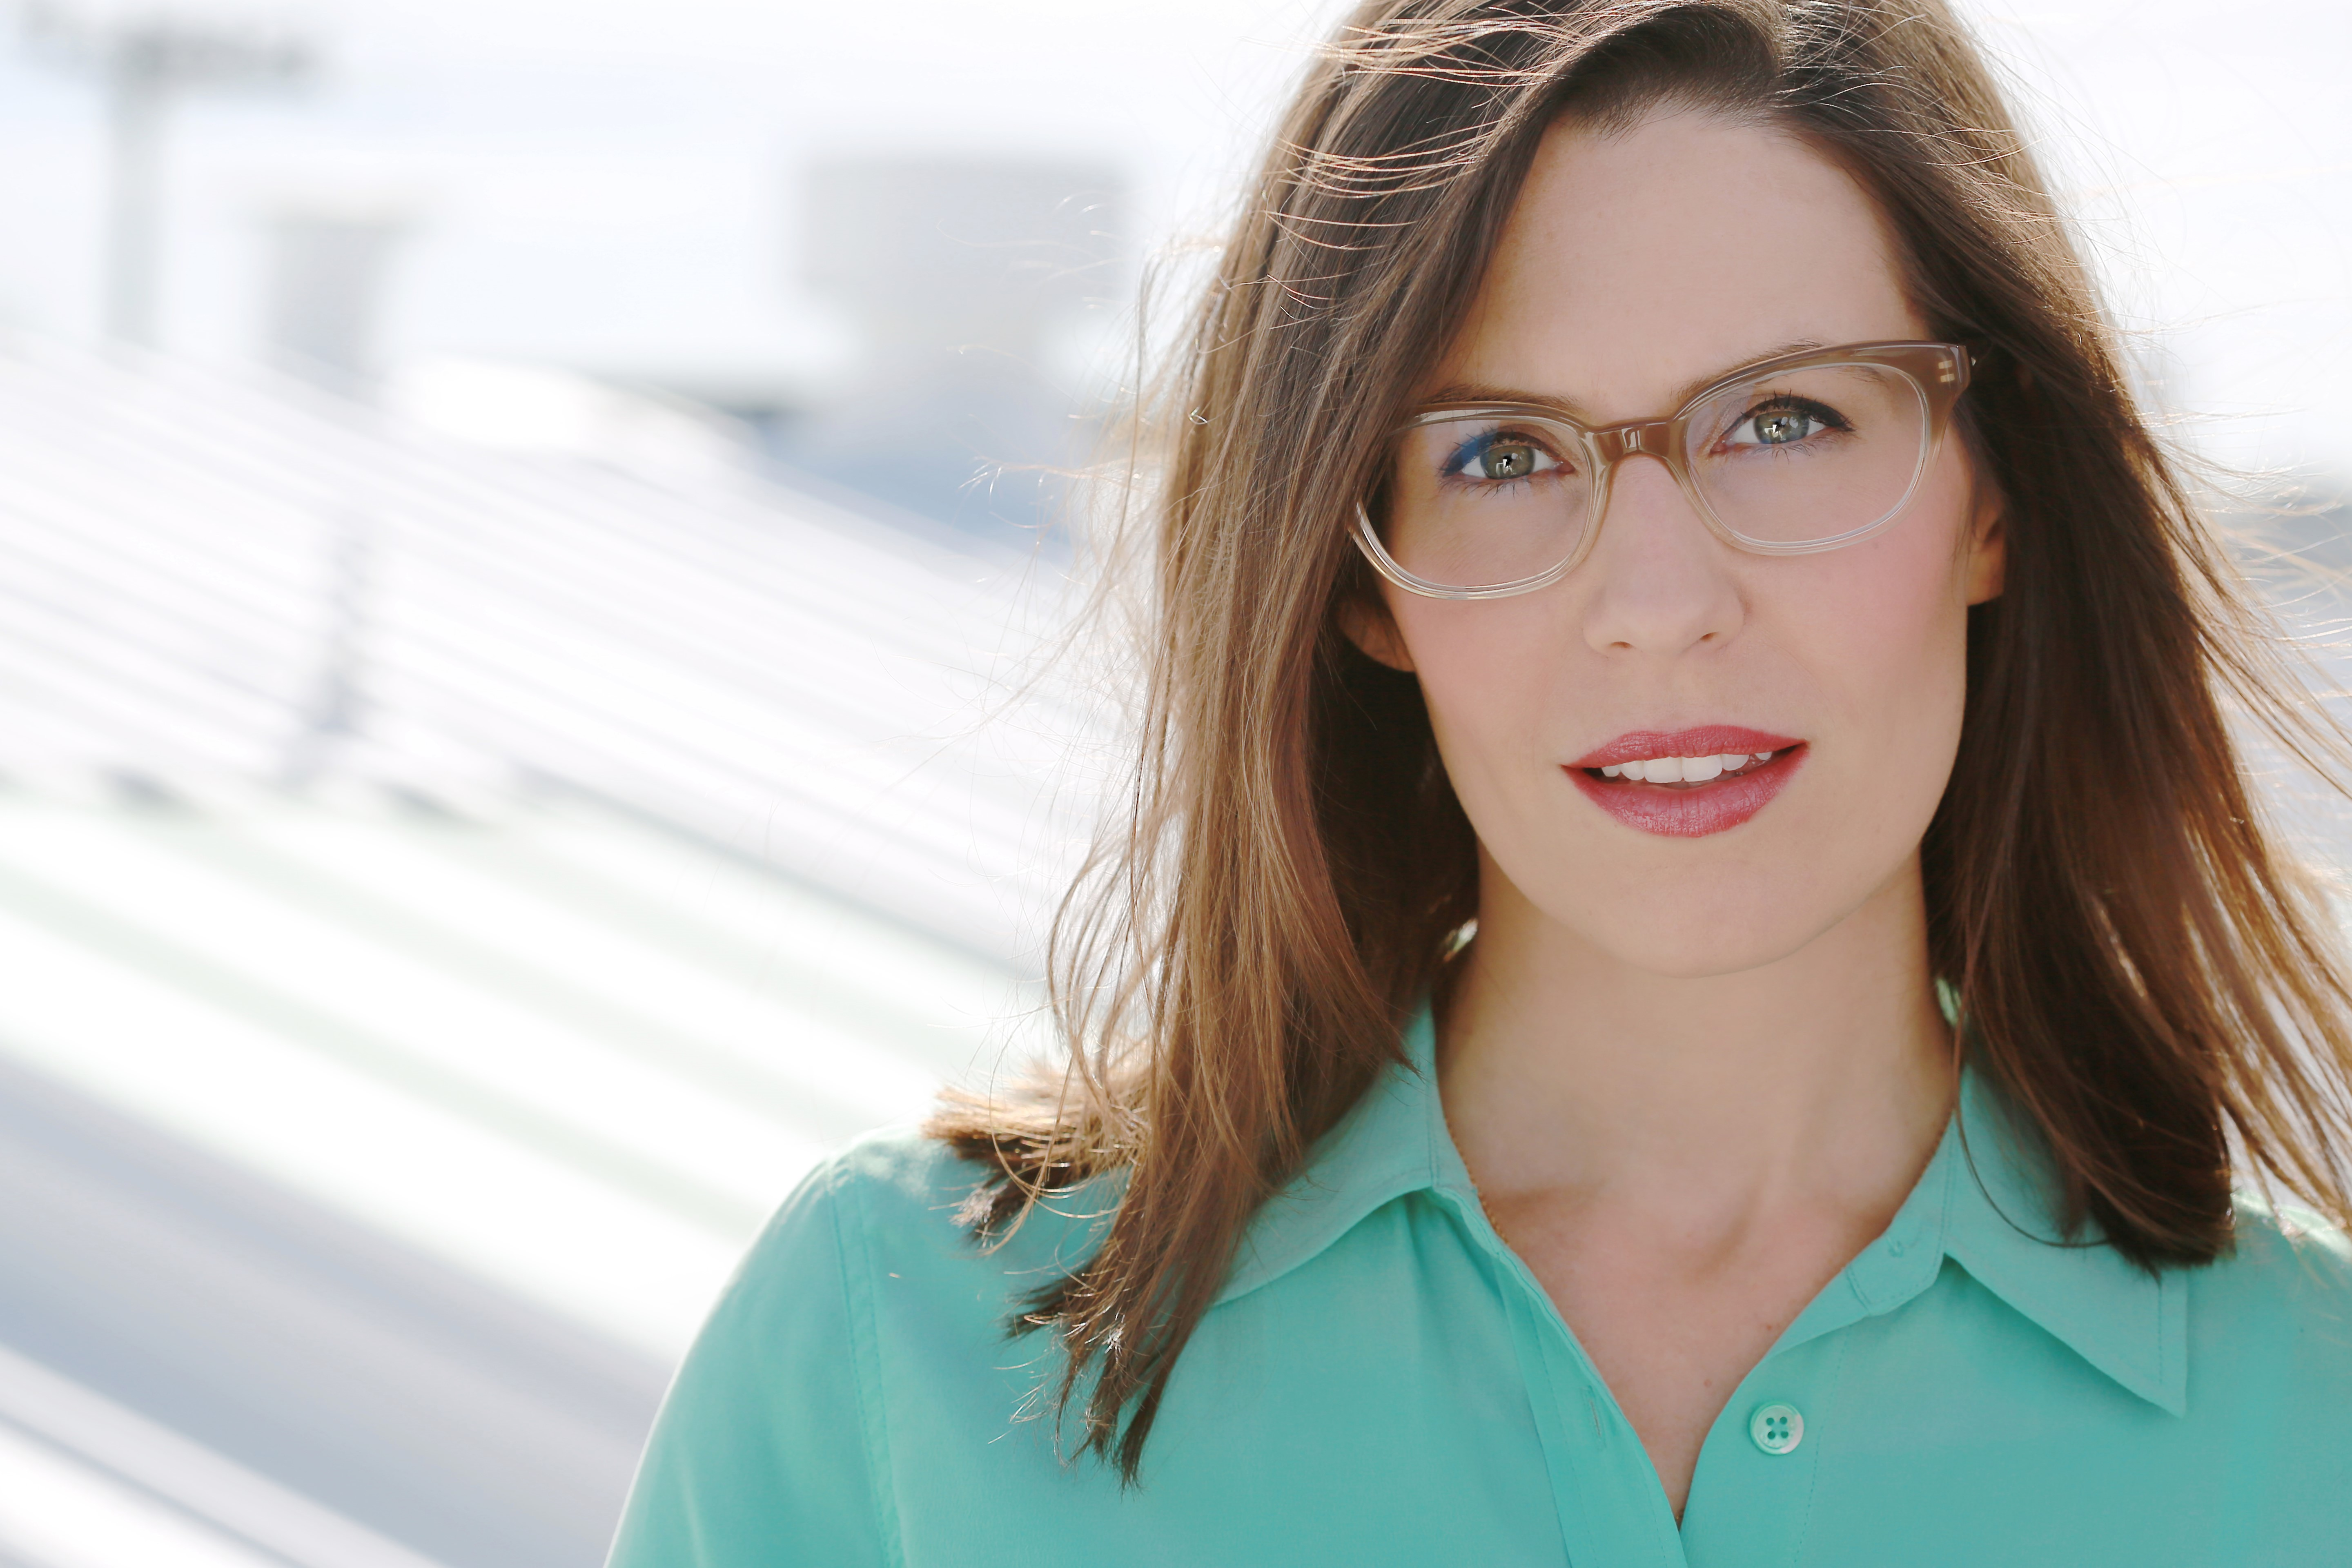 Playwright Lauren Gunderson is known for her witty plays about women and history; 'The Revolutionists' is a hot take on both. (Photo: courtesy of the artist and City Theatre)